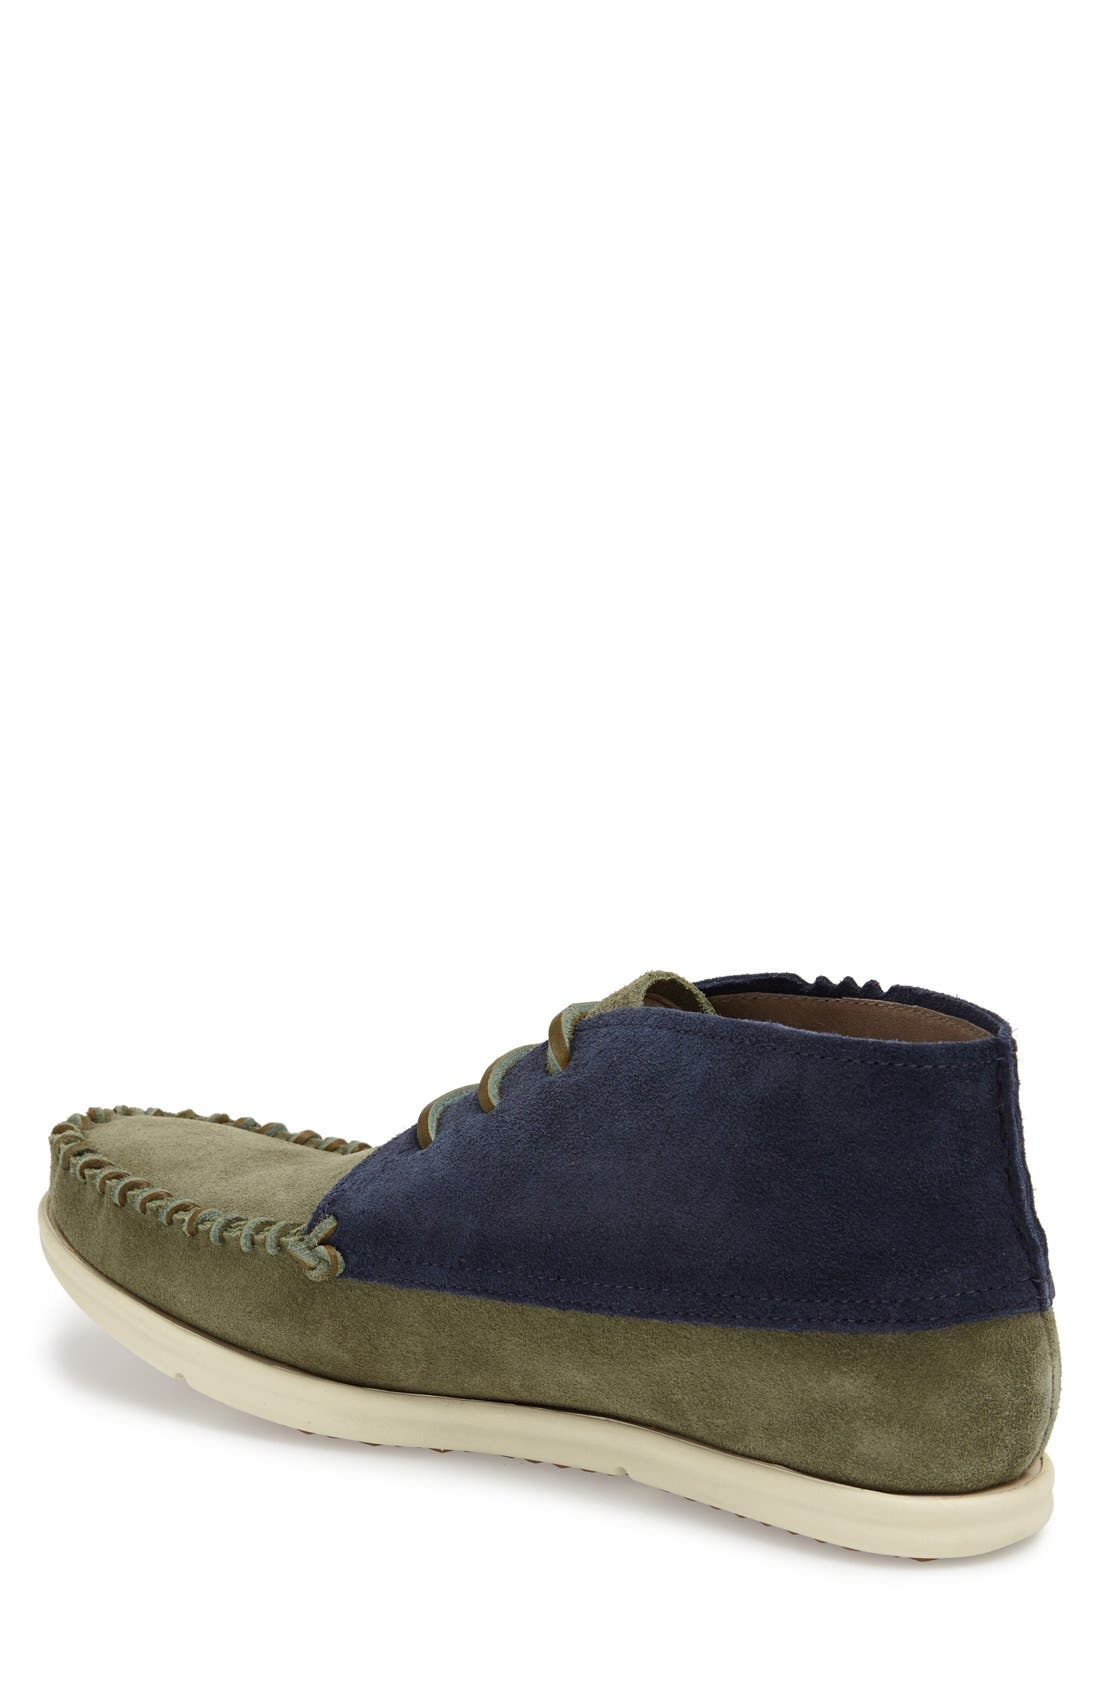 Alternate Image 2  - ohw? 'Louis' Two Tone Suede Moc Toe Boot (Men)